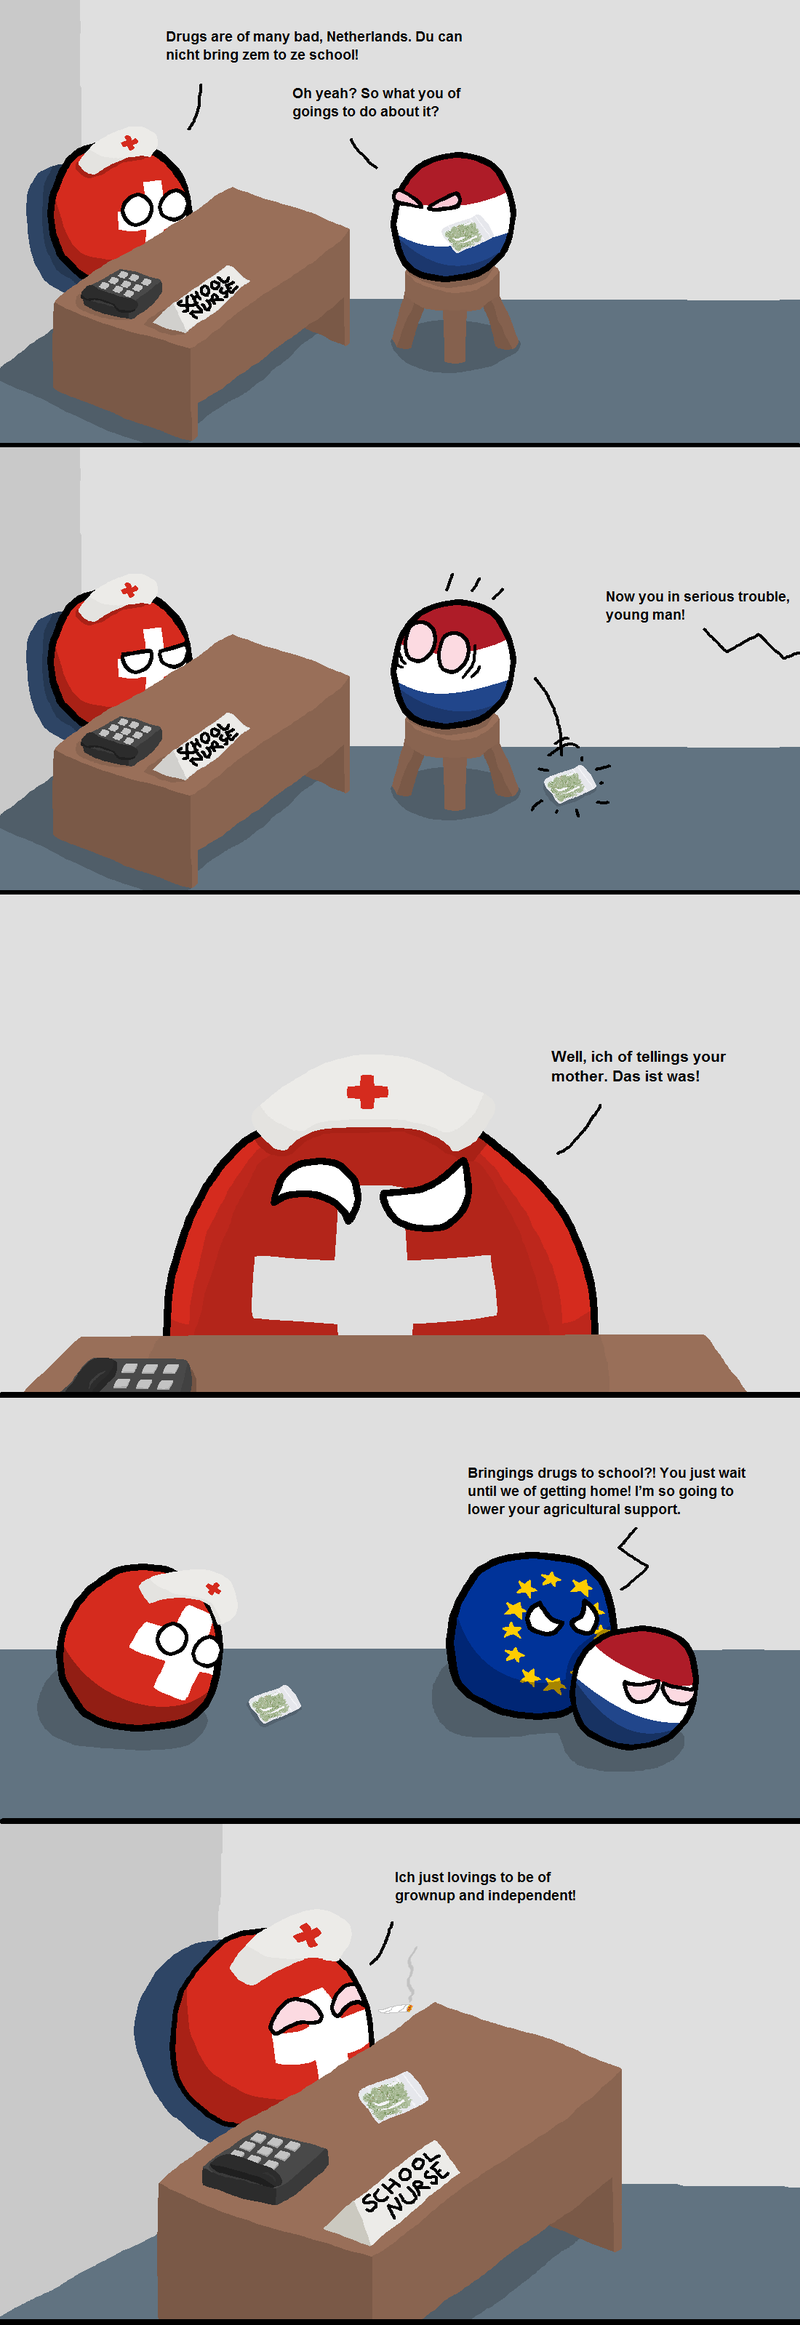 Daily Polandball: Nurse Switzerland is Back Again.